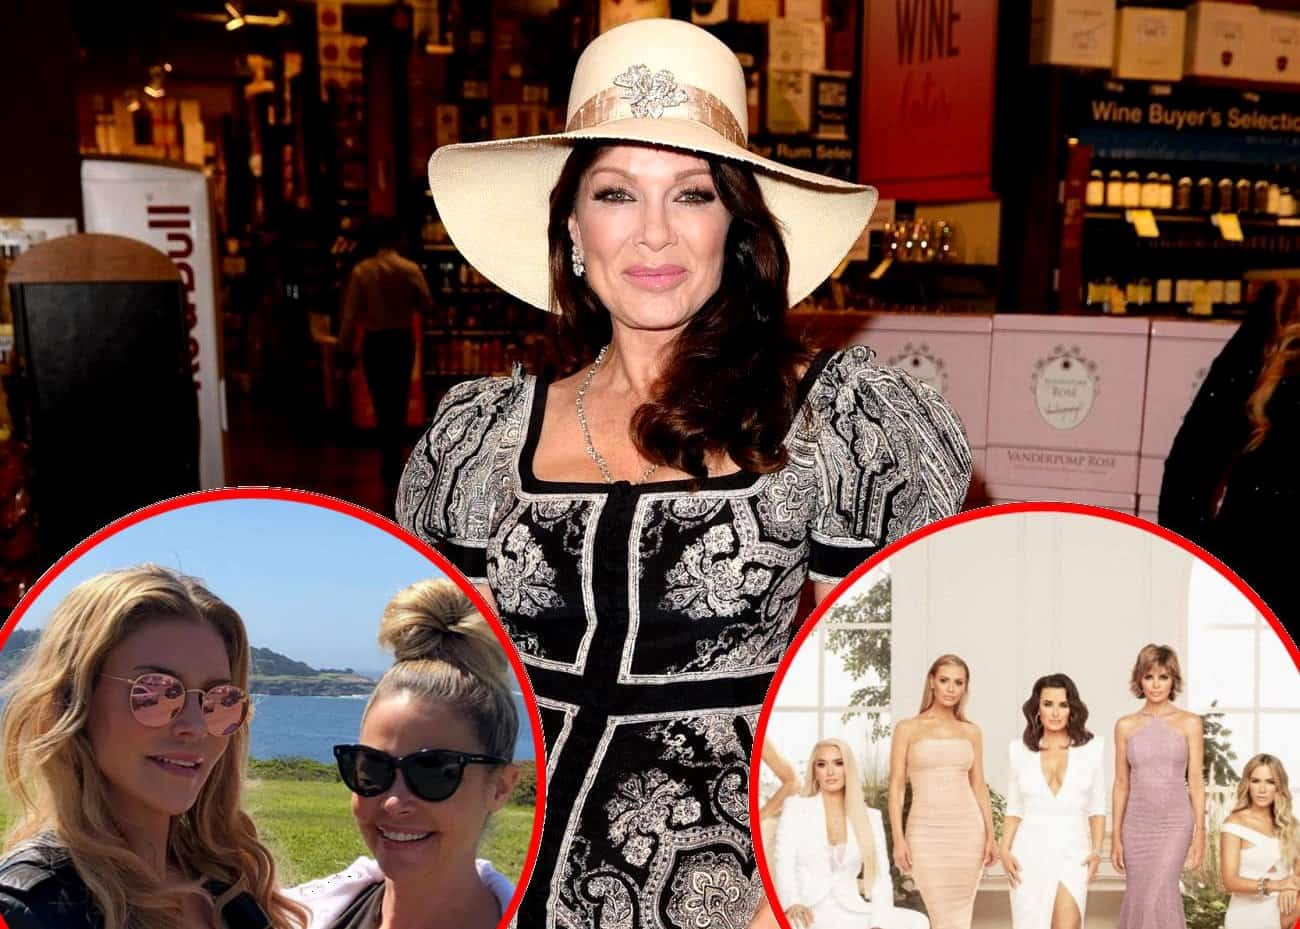 Ex RHOBH Star Lisa Vanderpump Reacts to Denise Richards and Brandi Glanville Rumors and Admits She Might Be Open to Returning, Will She Watch the New Season?